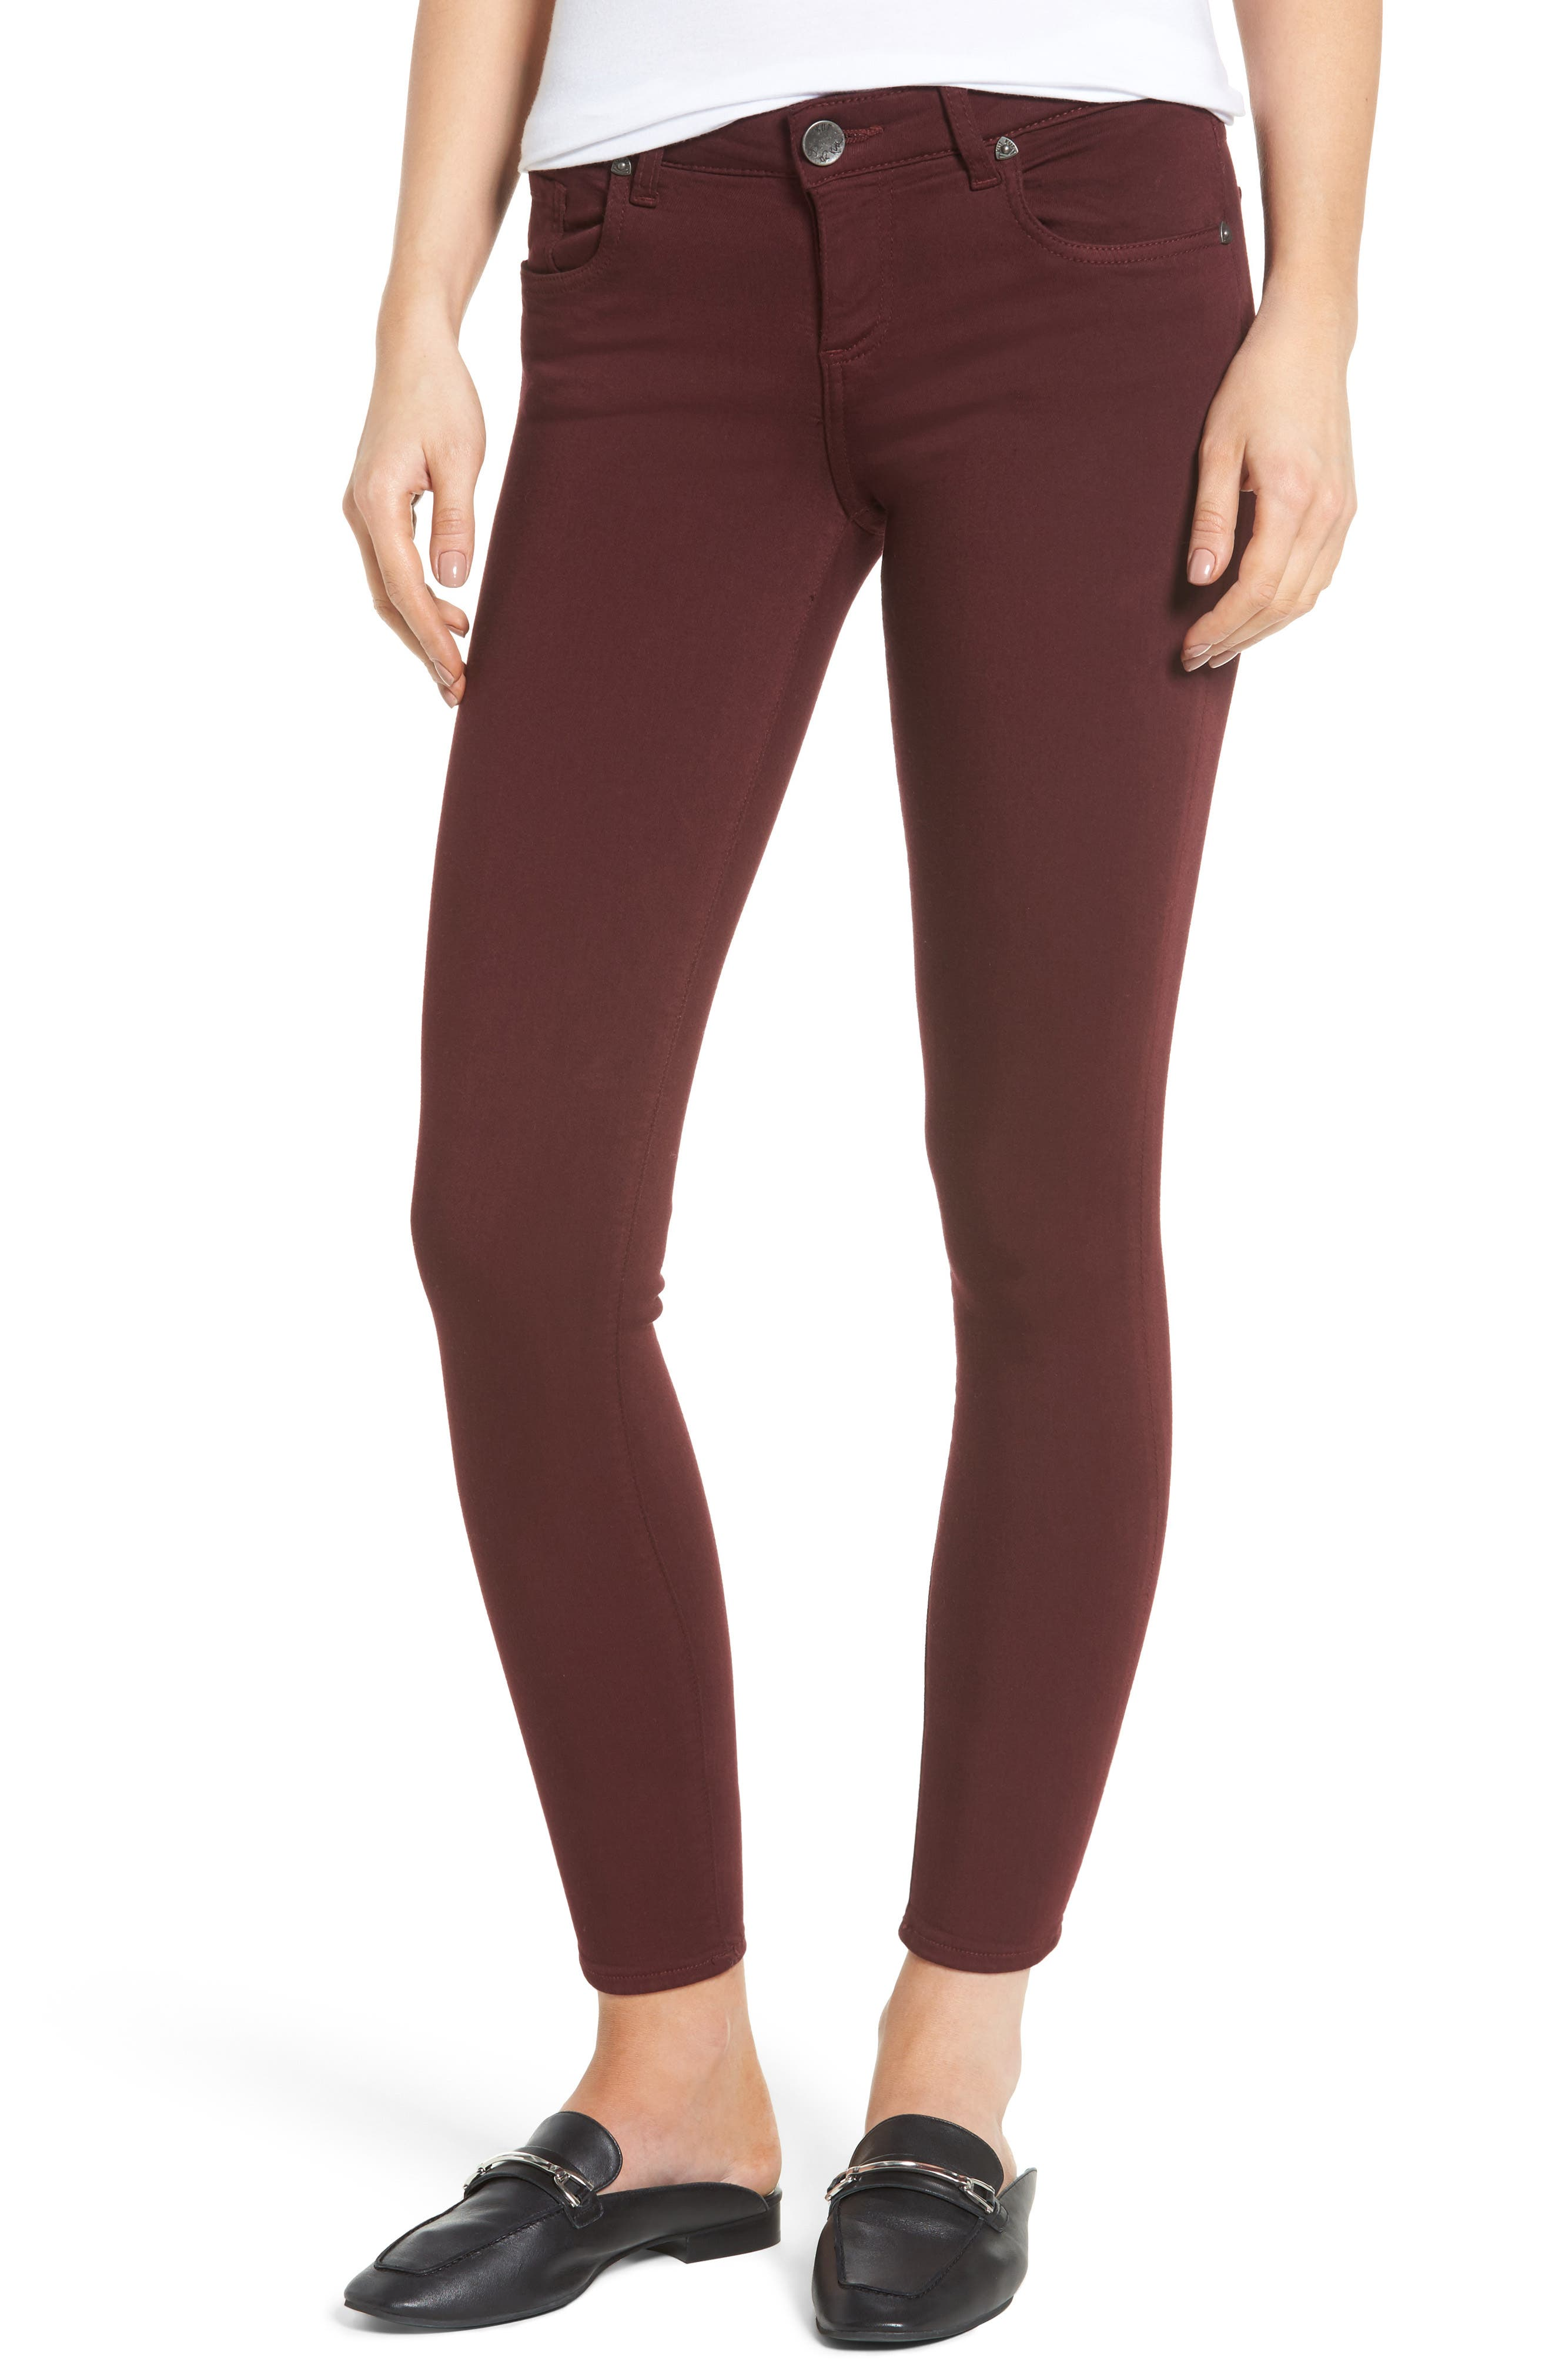 Alternate Image 1 Selected - KUT from the Kloth Donna Skinny Jeans (Regular & Petite)